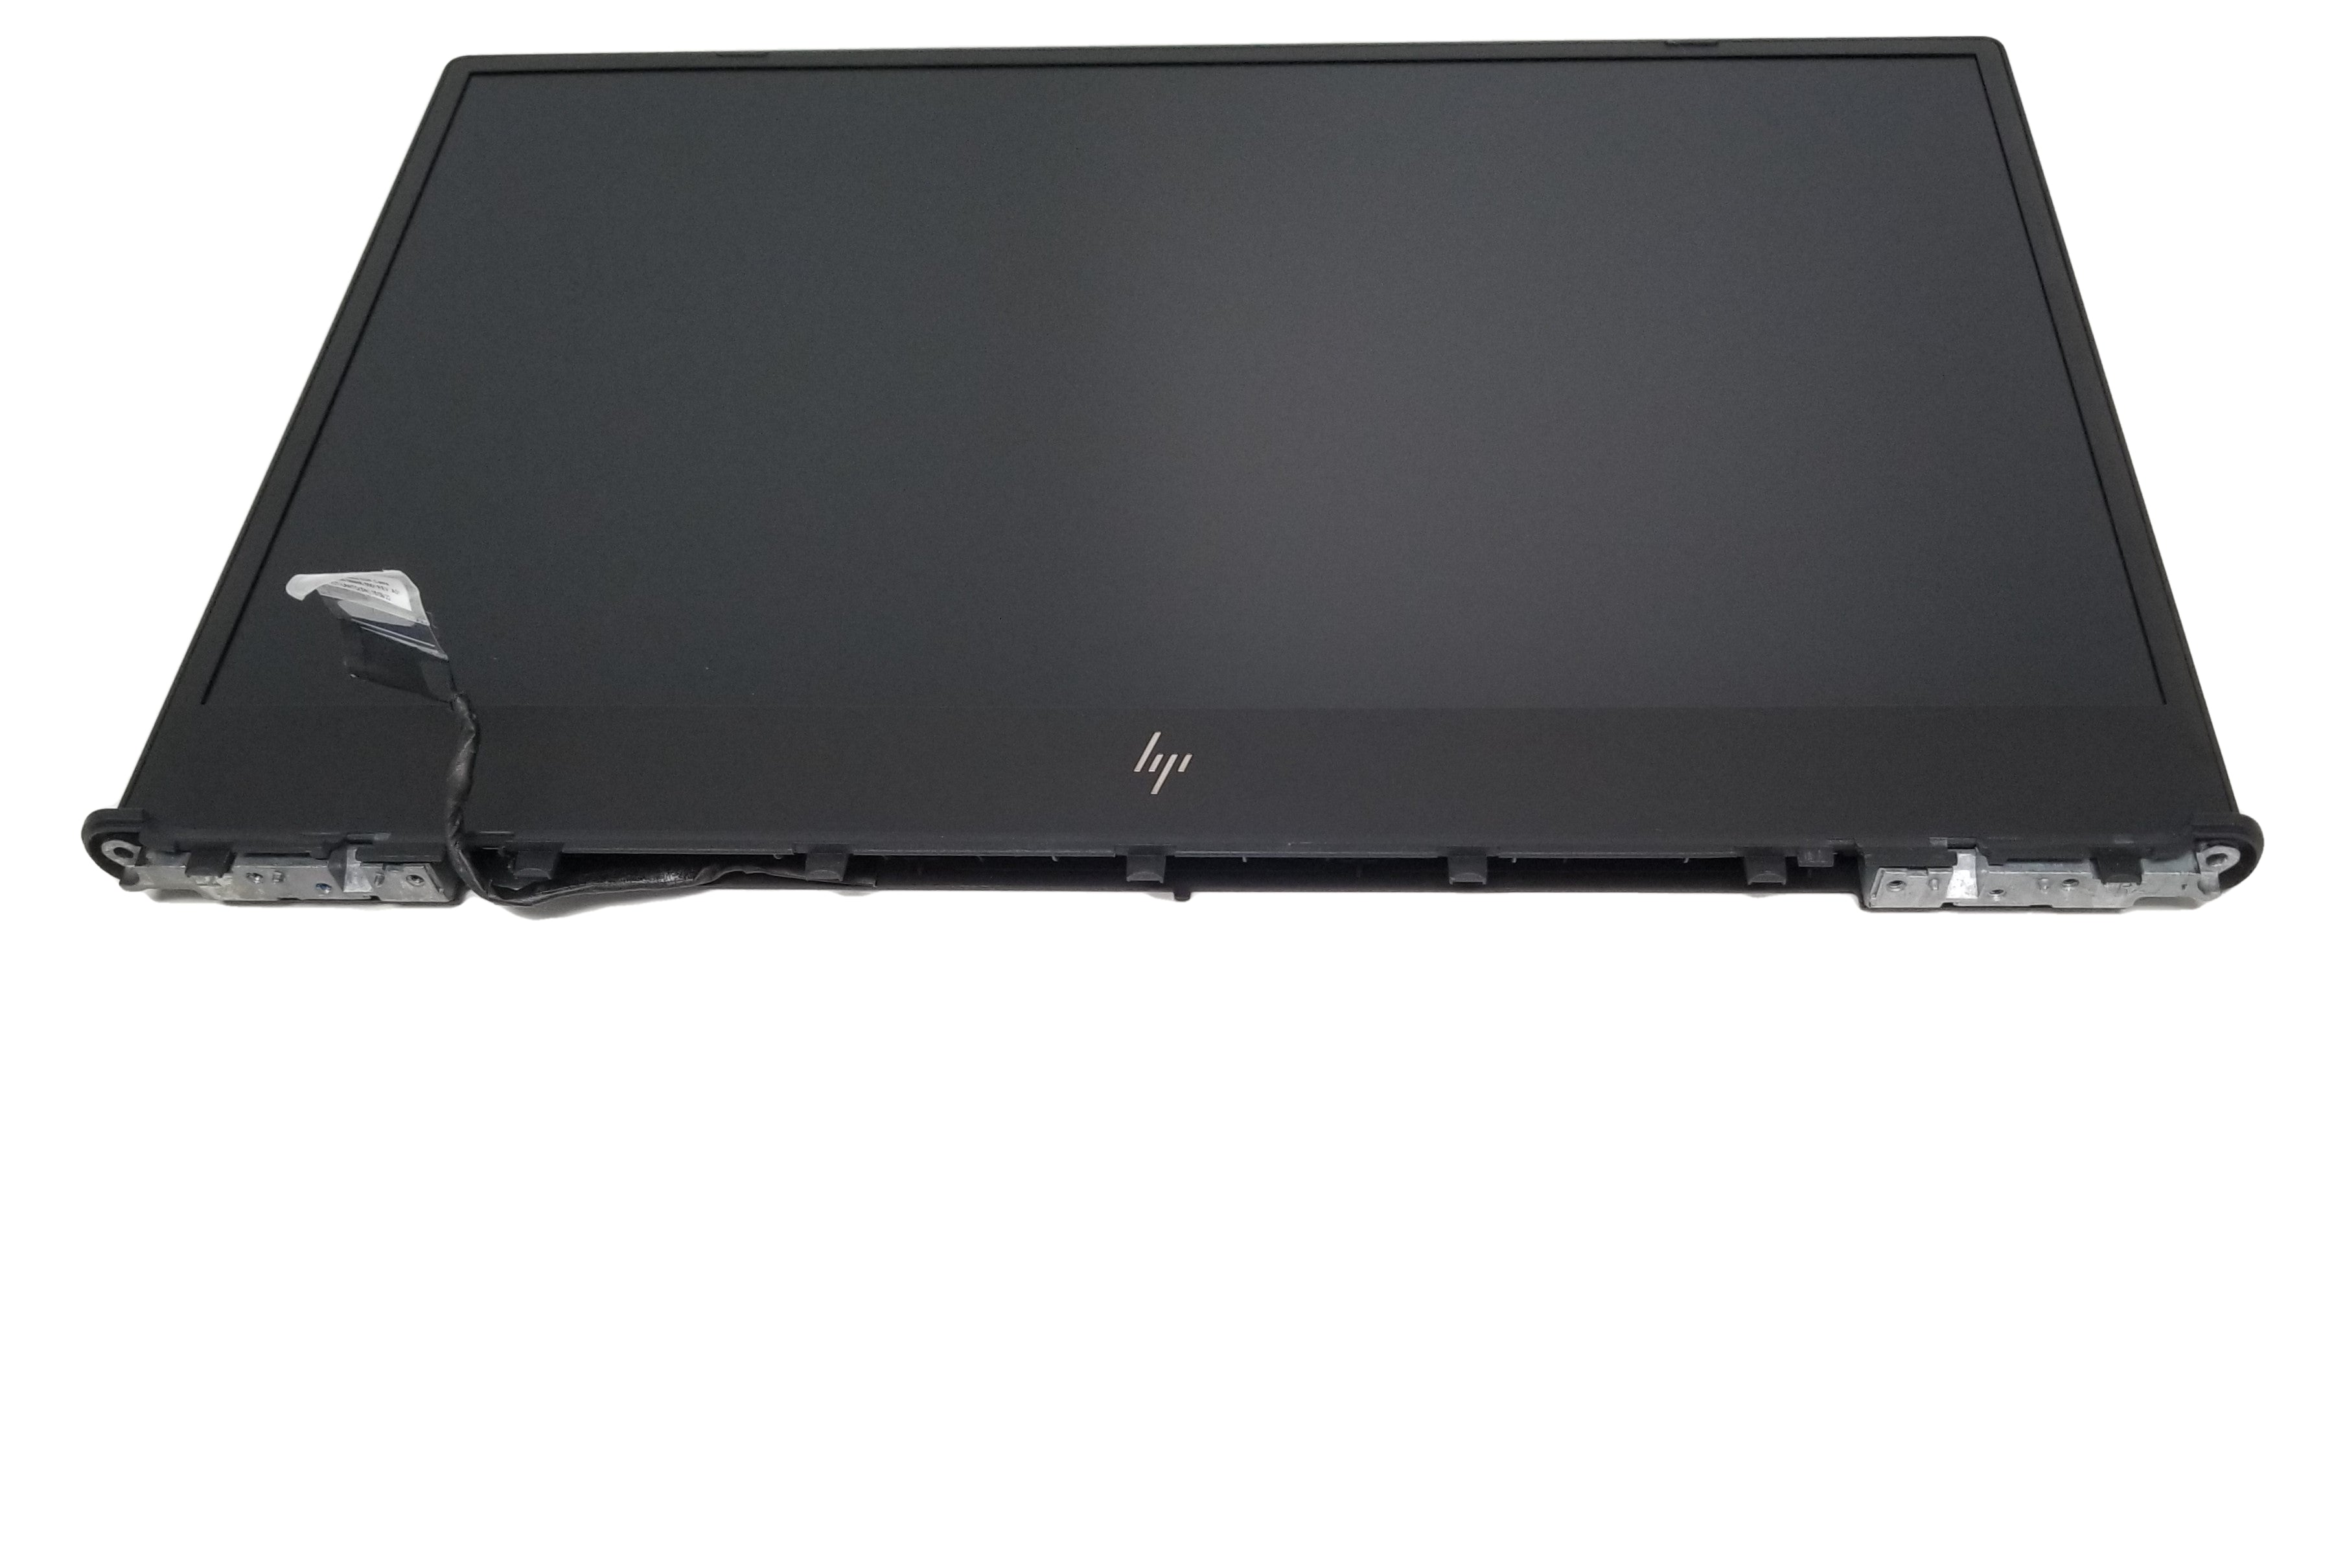 HP ELITE X3 LAP DOCK Complete Display Assembly - 908278-001 / 908279-001 / 914594-001 / 908270-001